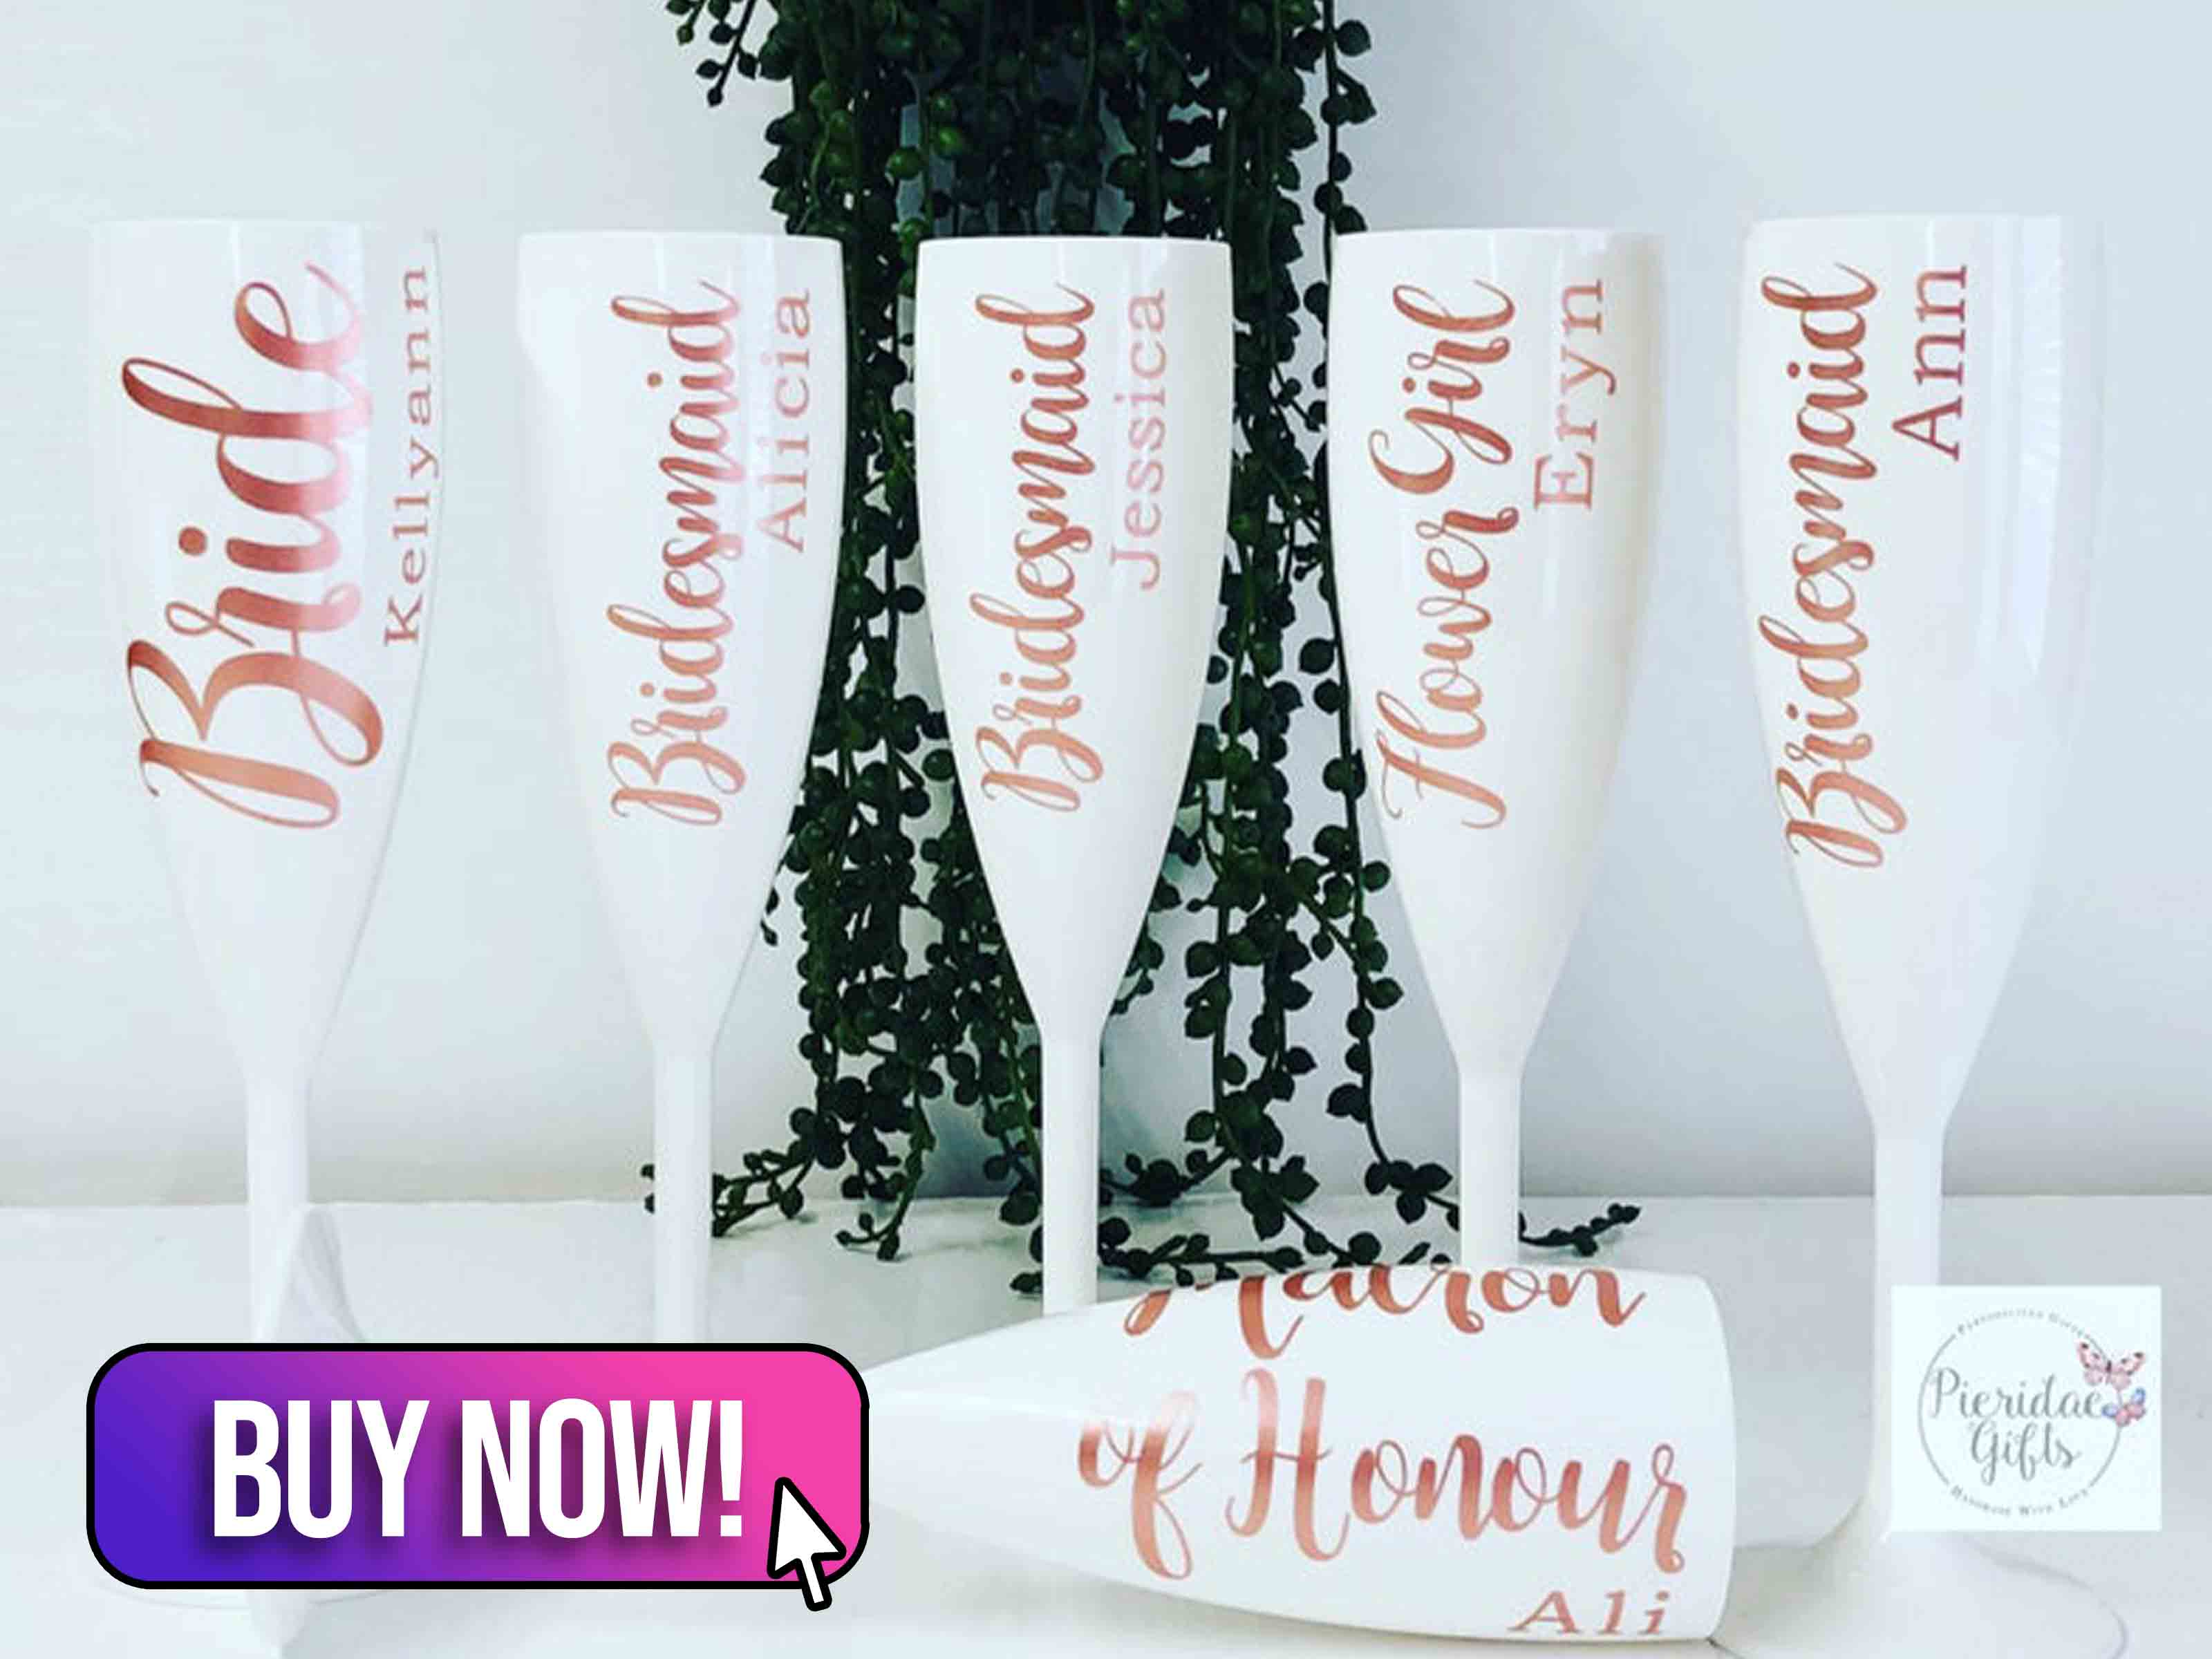 Personalised White Reusable Plastic Champagne Flute - PieridaeGifts